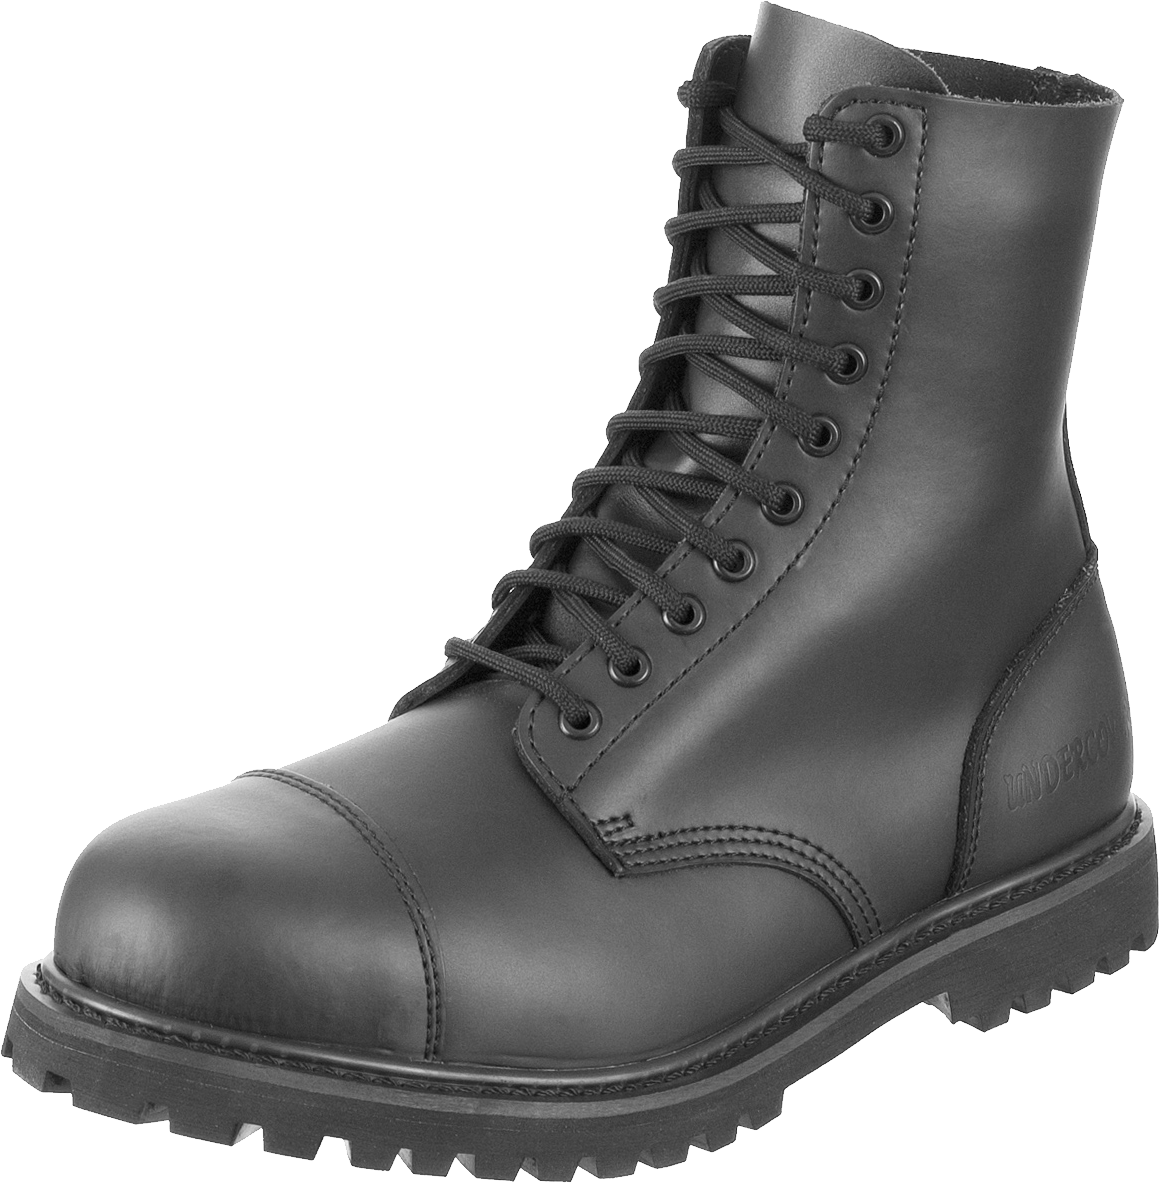 Boots PNG - 13575